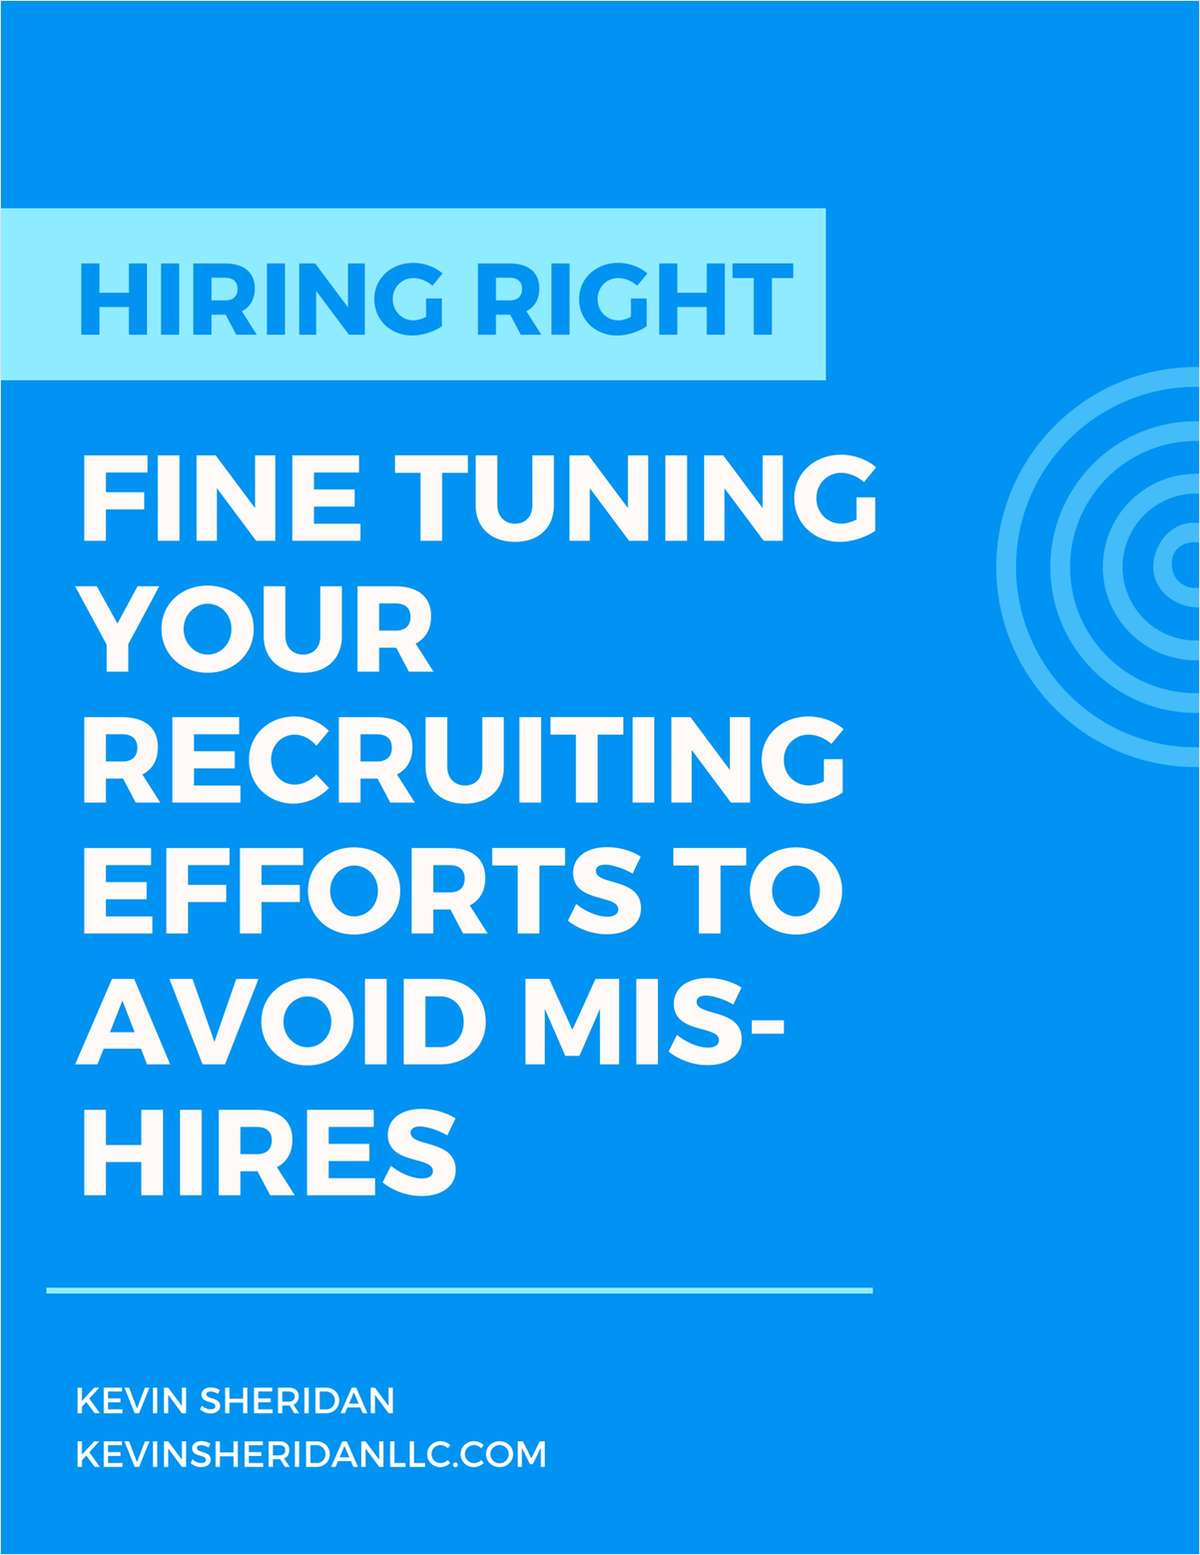 Hiring Right - Fine Tuning Your Recruiting Efforts to Avoid Mis-hires